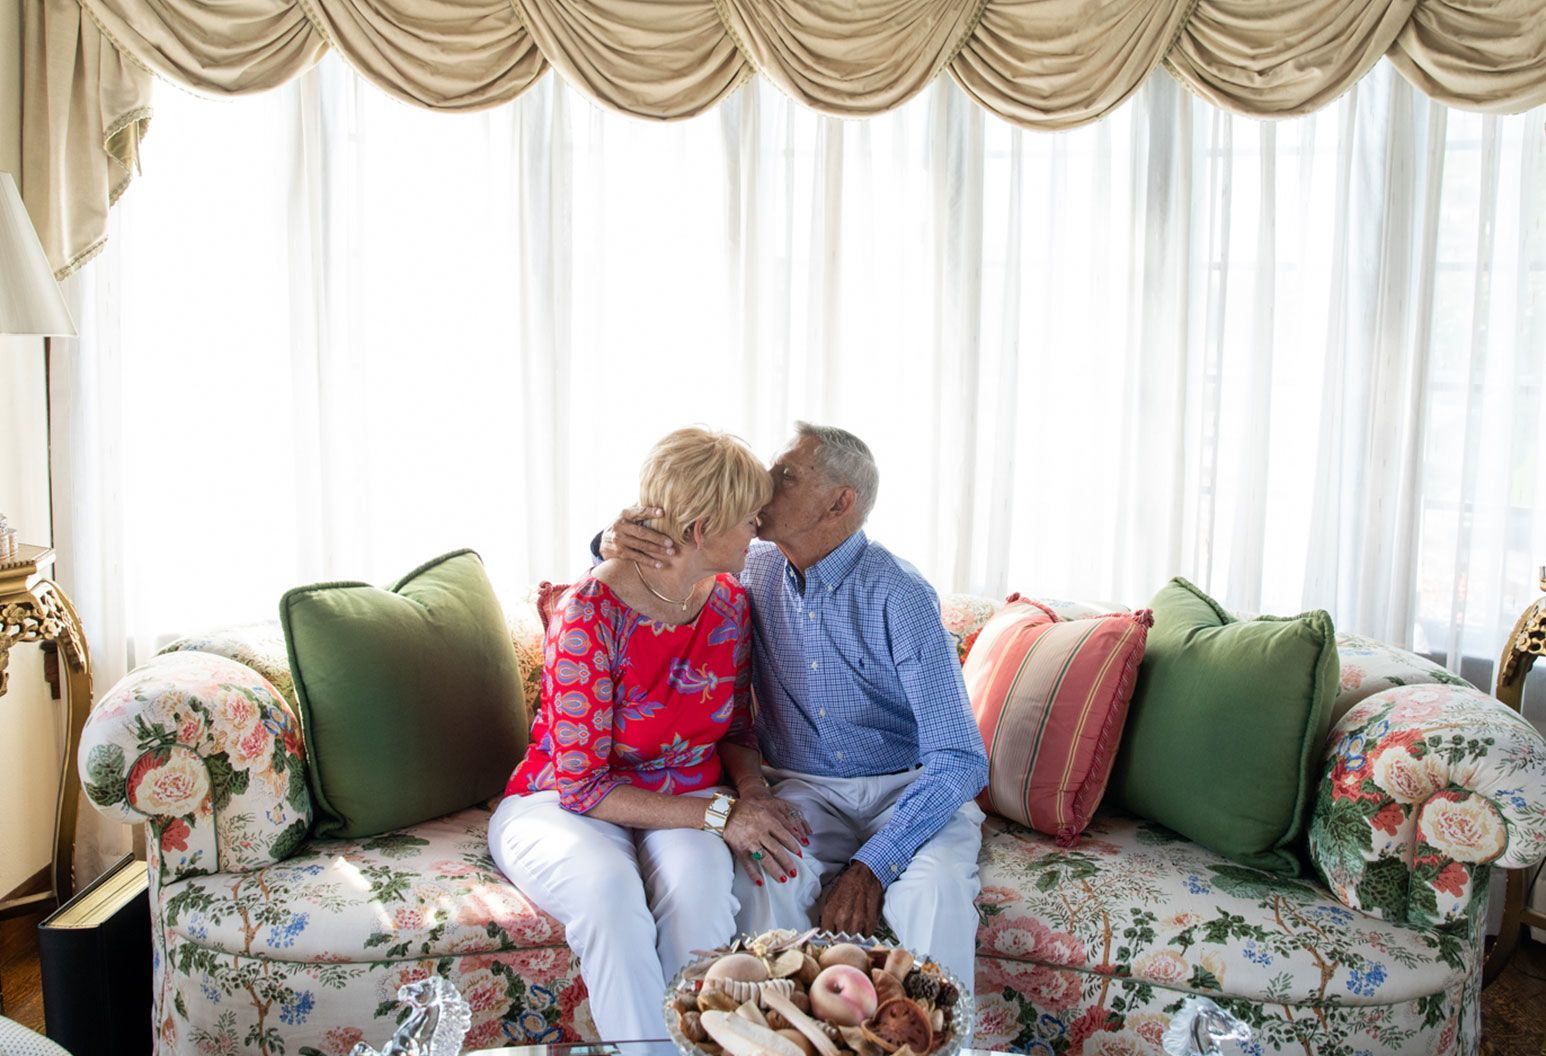 An elderly man kisses the forehead of an elderly woman as they sit on a couch in their lavish living room.